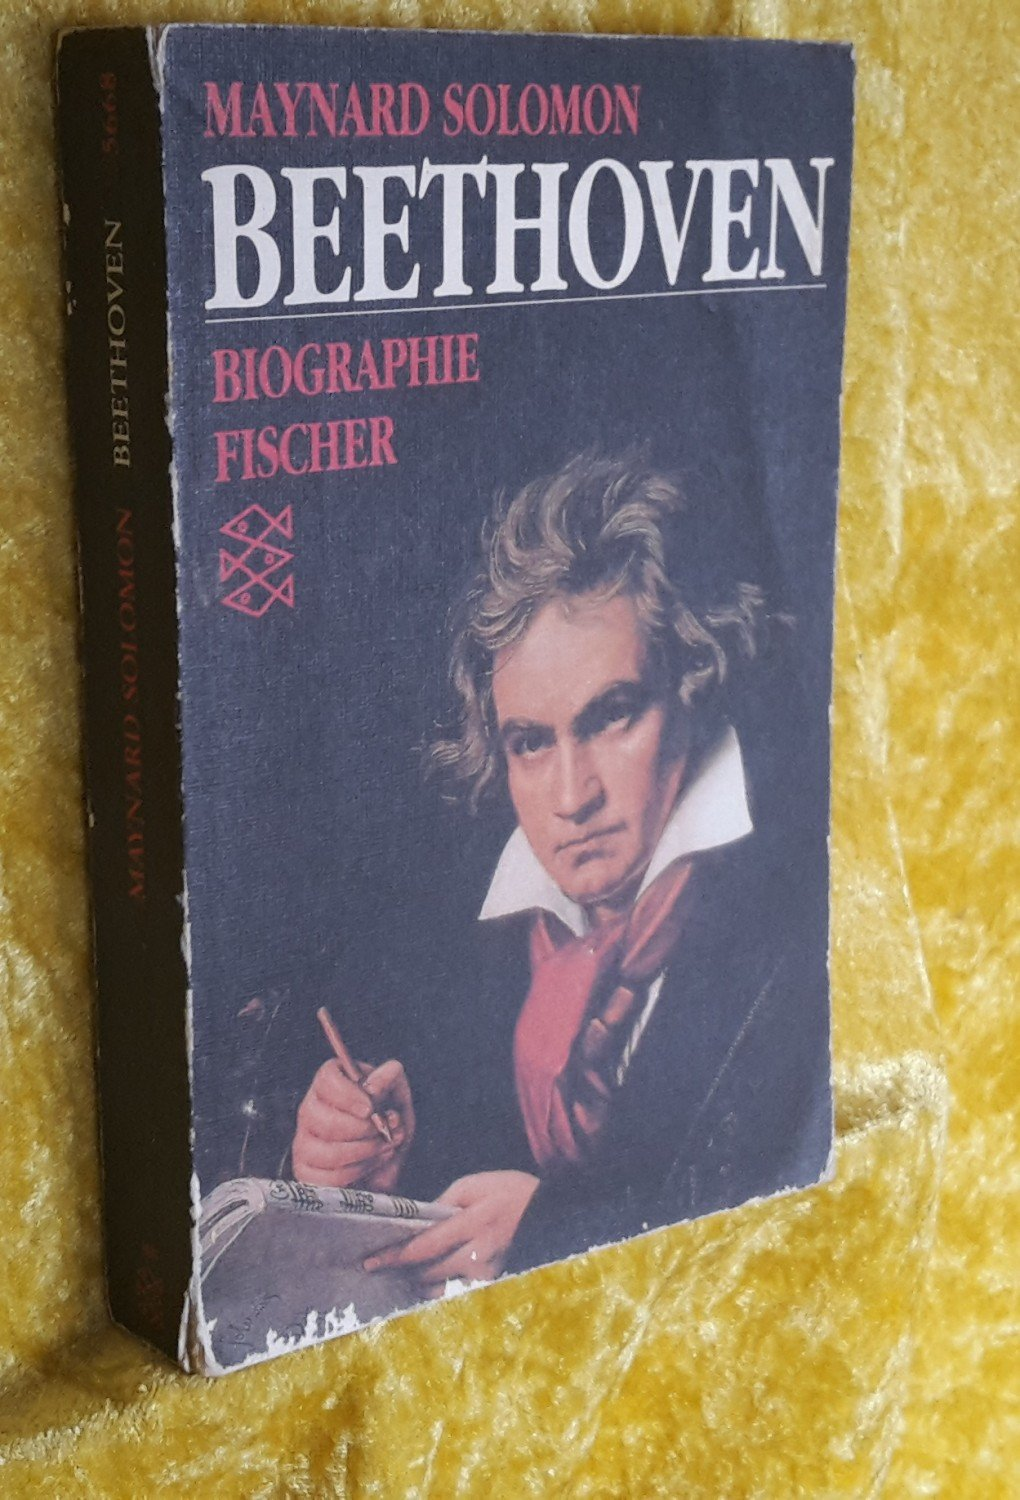 beethoven bio Ludwig van beethoven was a german composer as well as a pianist, who baptized on december 17, 1770 biography of beethoven revealed how he conquered the musical world.